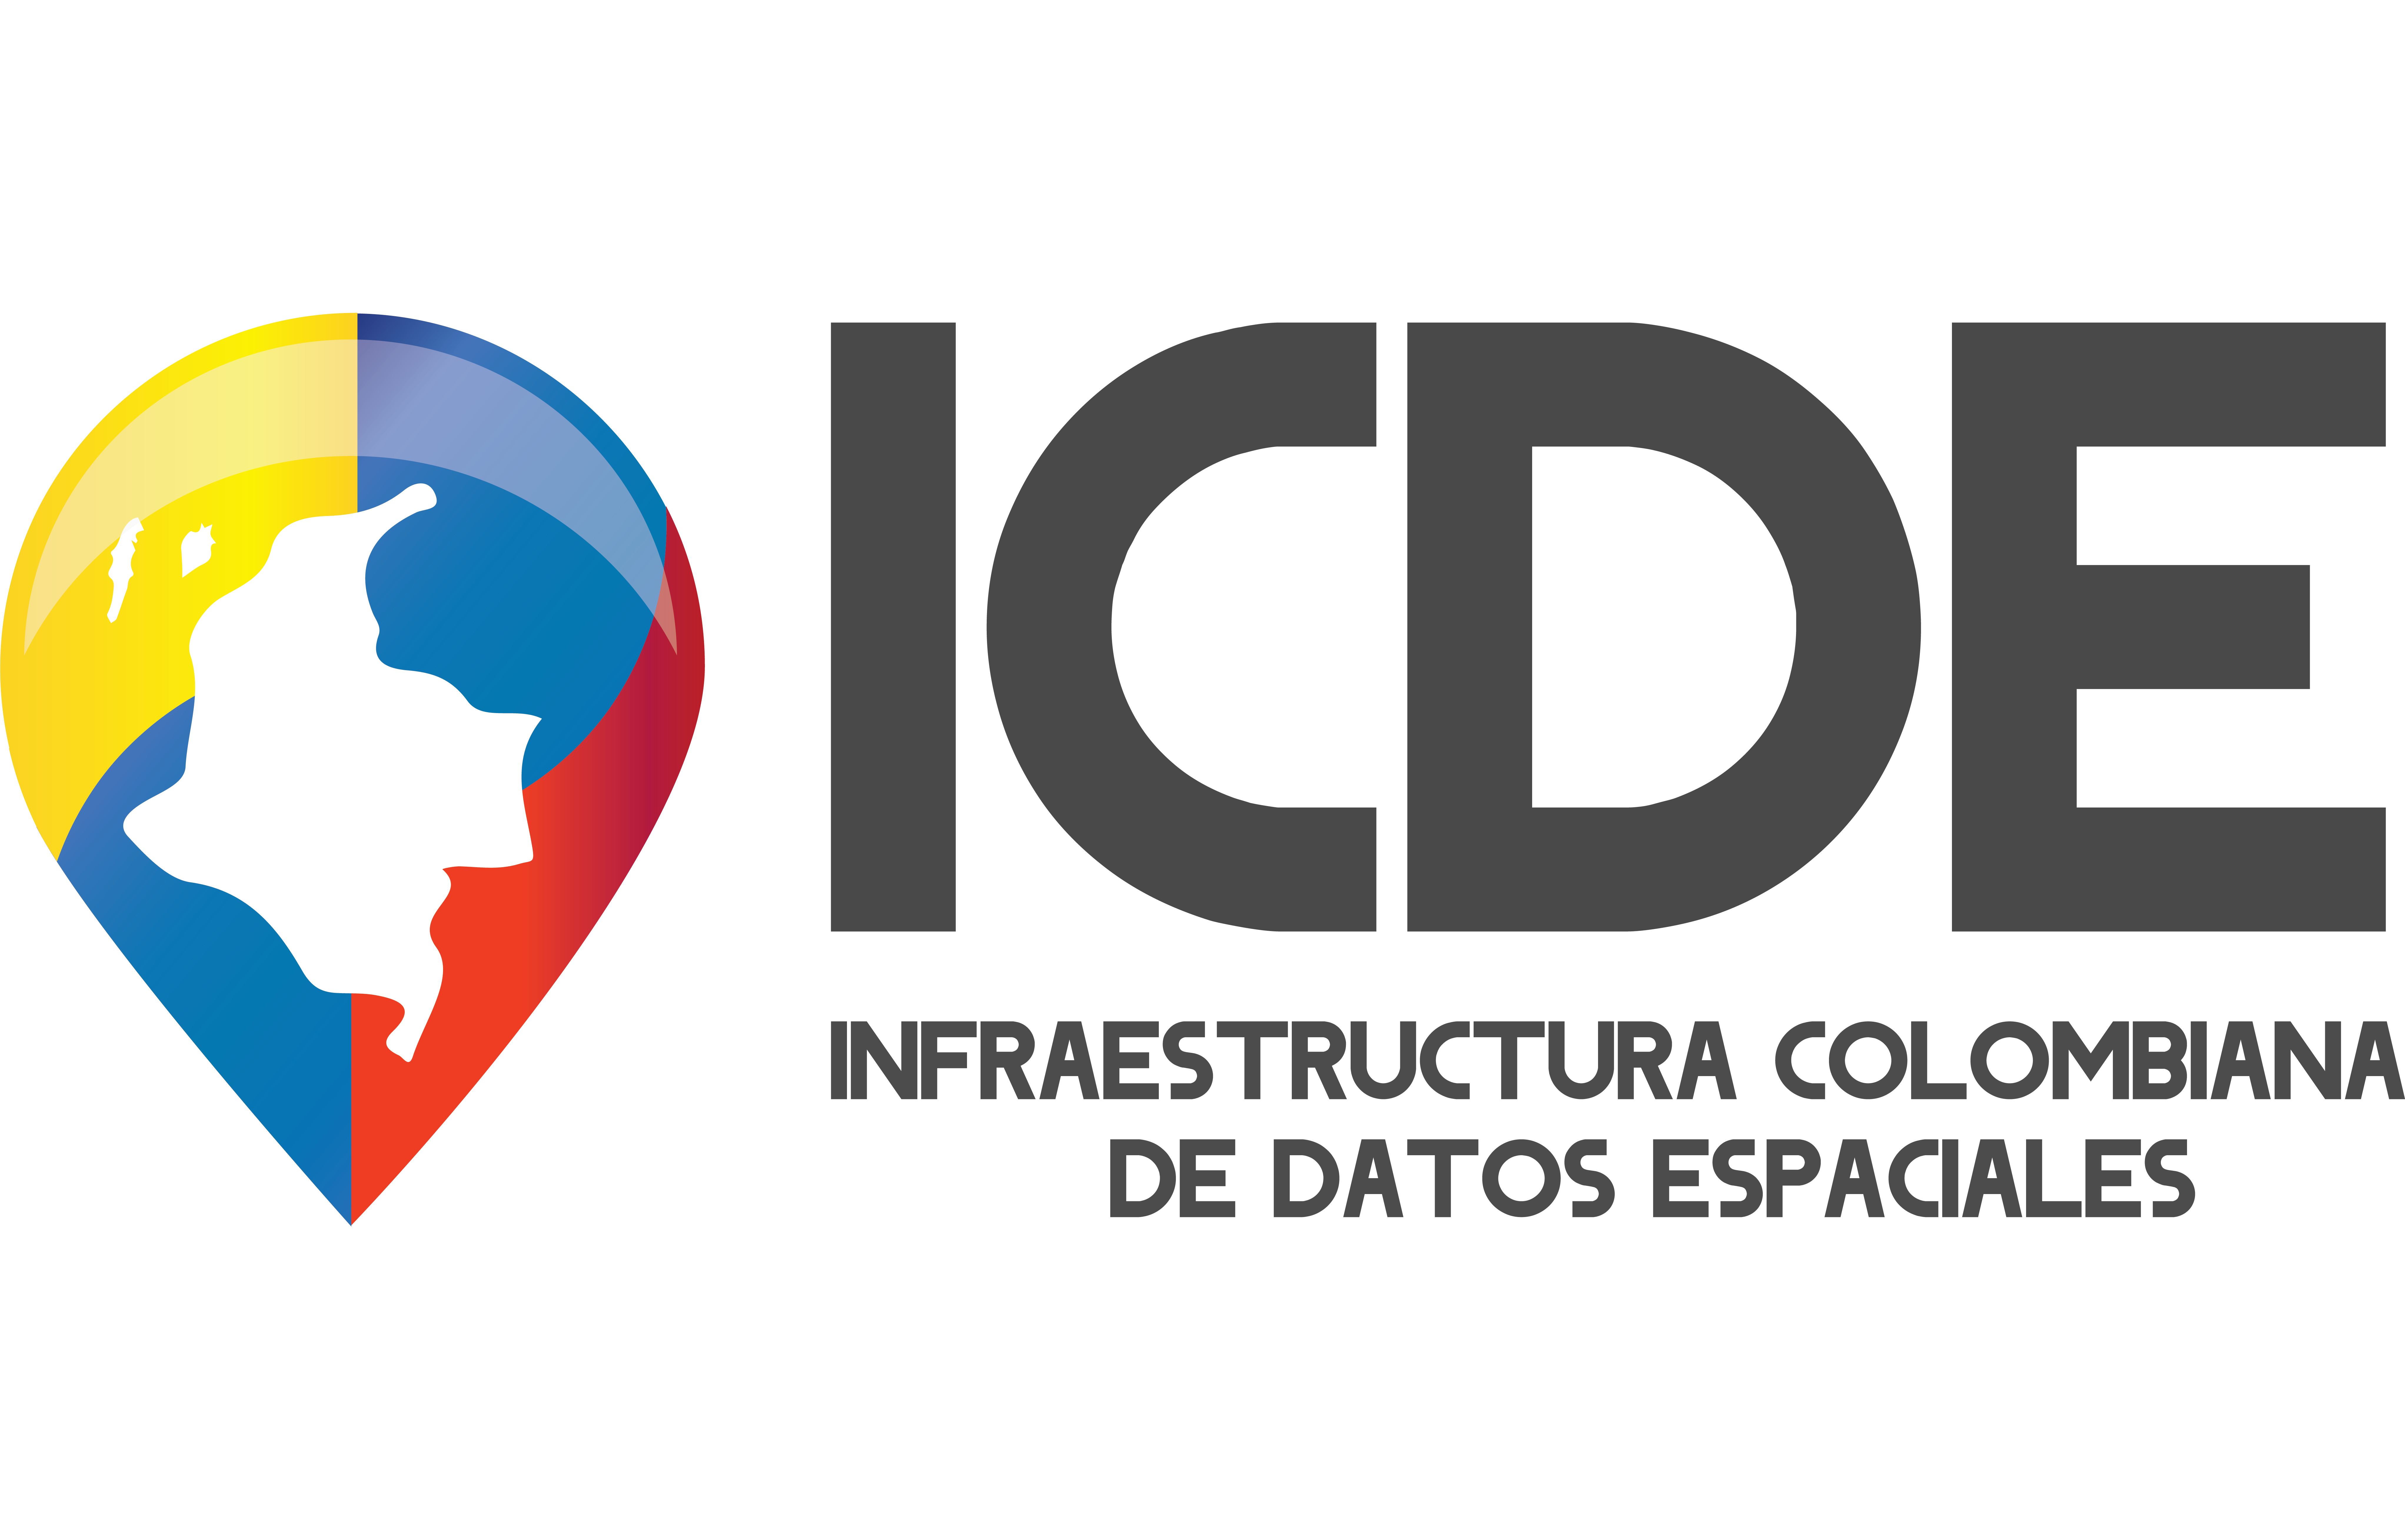 http://www.icde.org.co/